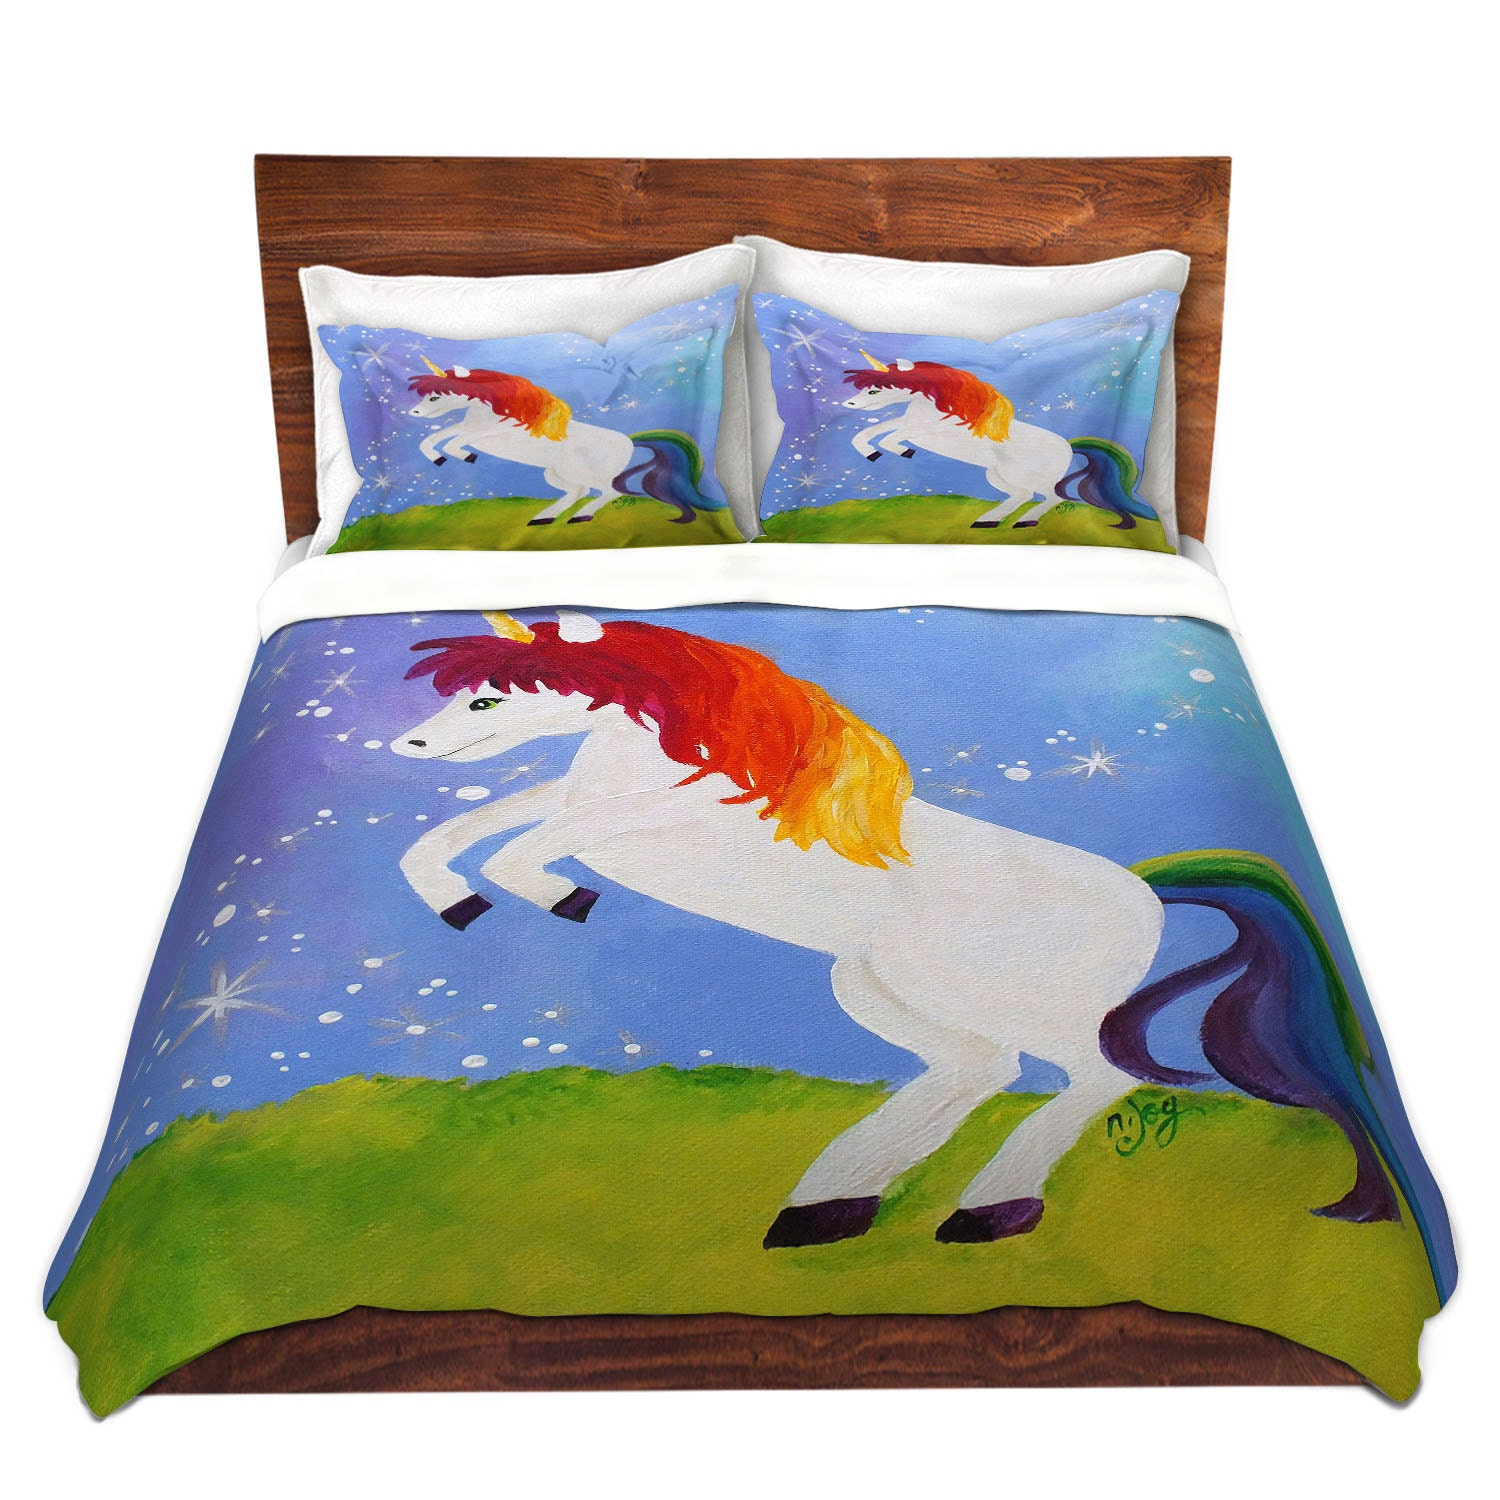 Rainbow Unicorn Duvet Cover Bedding For Girls Room Nursery